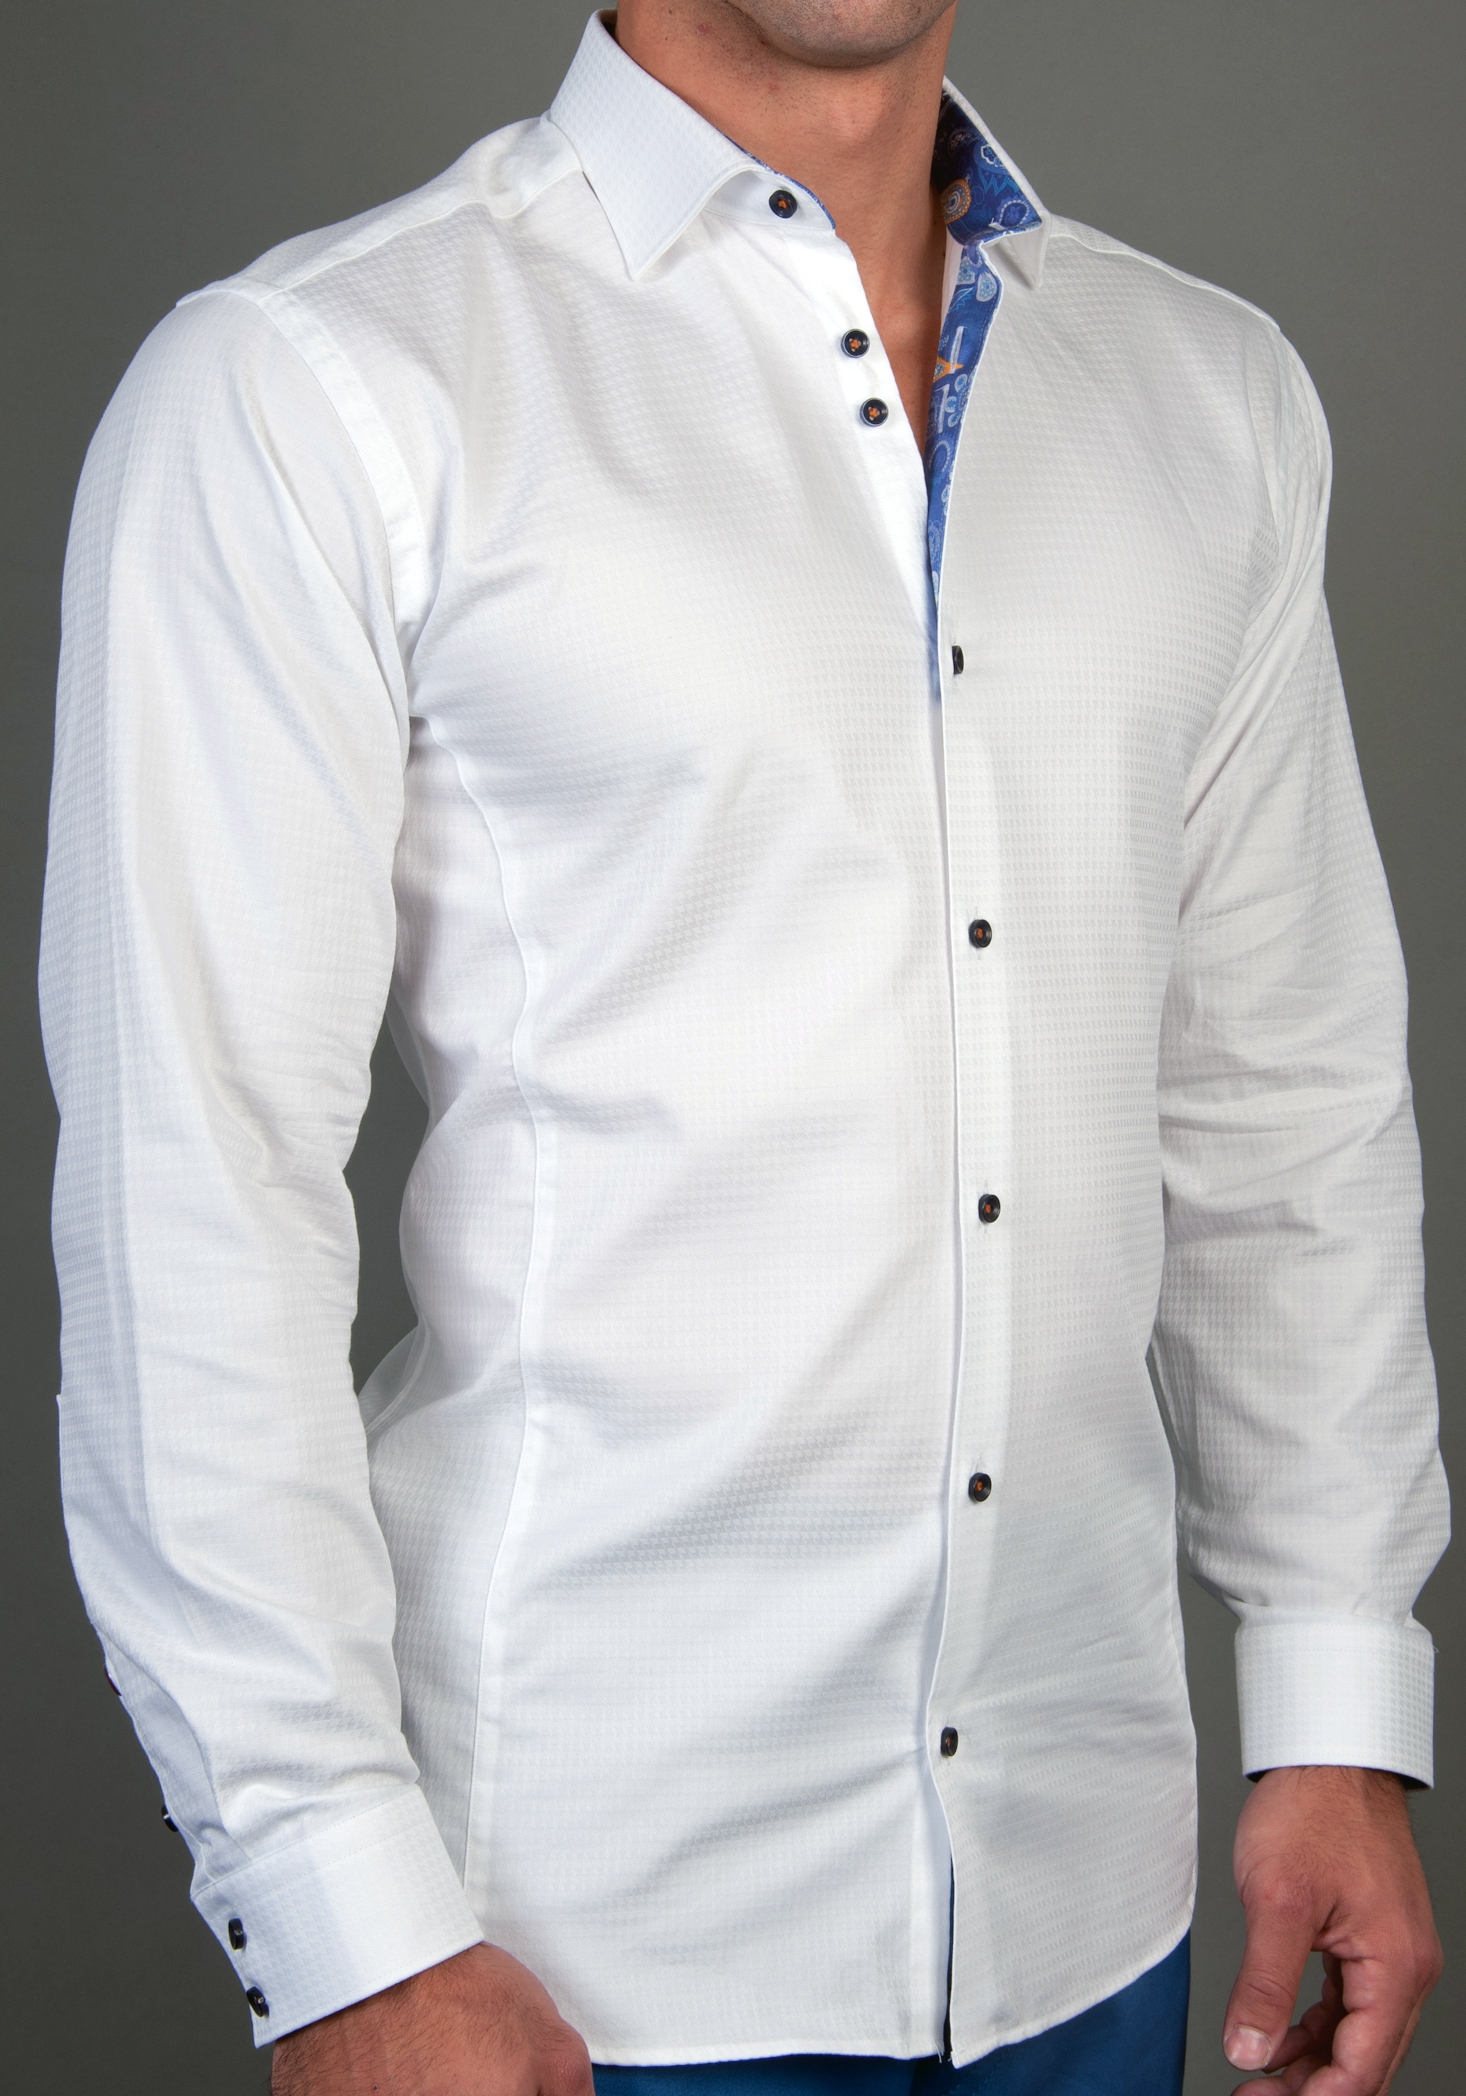 Wholesale Formal Shirts Manufacturer and Exporter | Formal Shirts ...